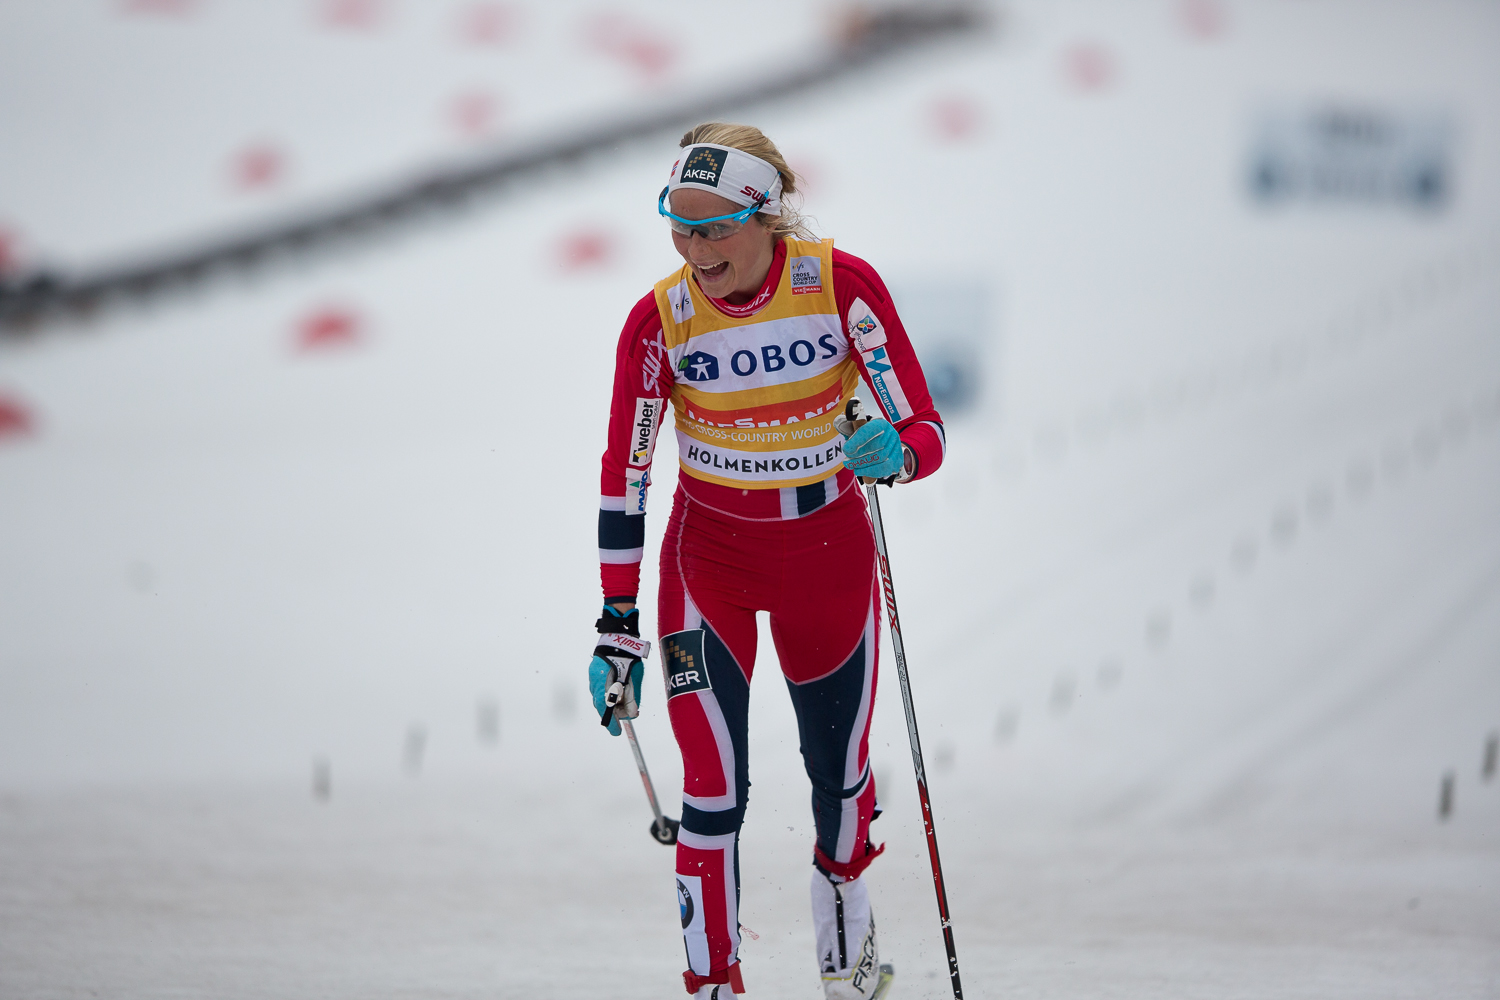 Therese Johaug crossed the finish line in 2nd place.